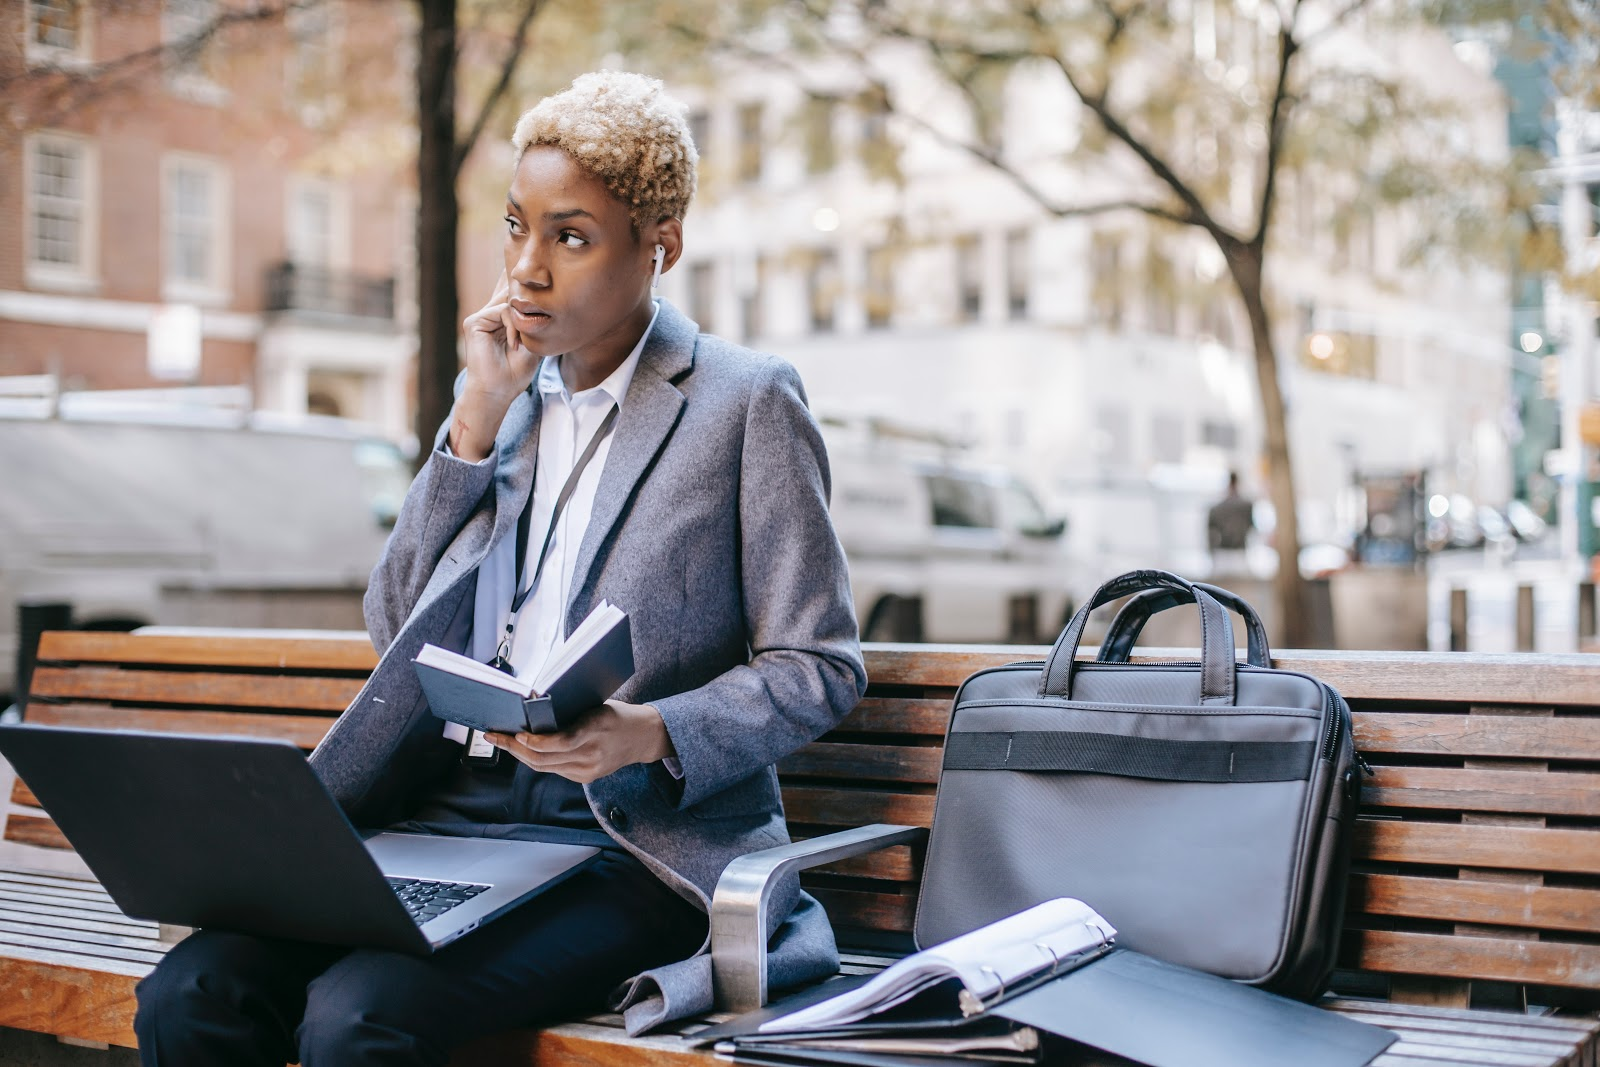 How to develop business acumen skills